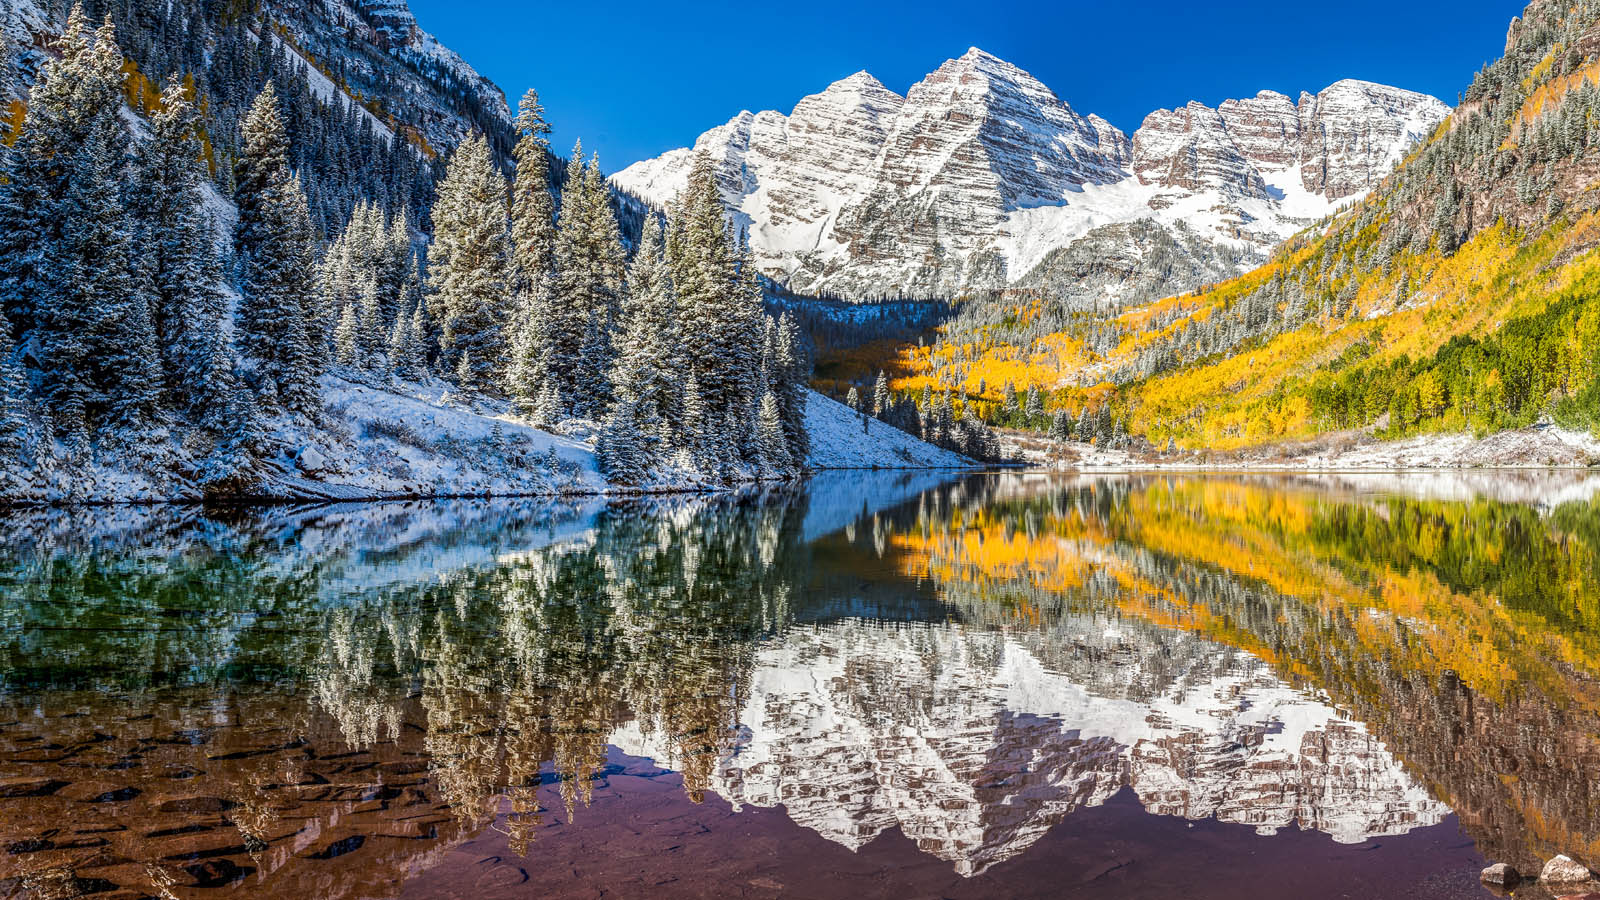 Maroon Bells at Aspen, CO